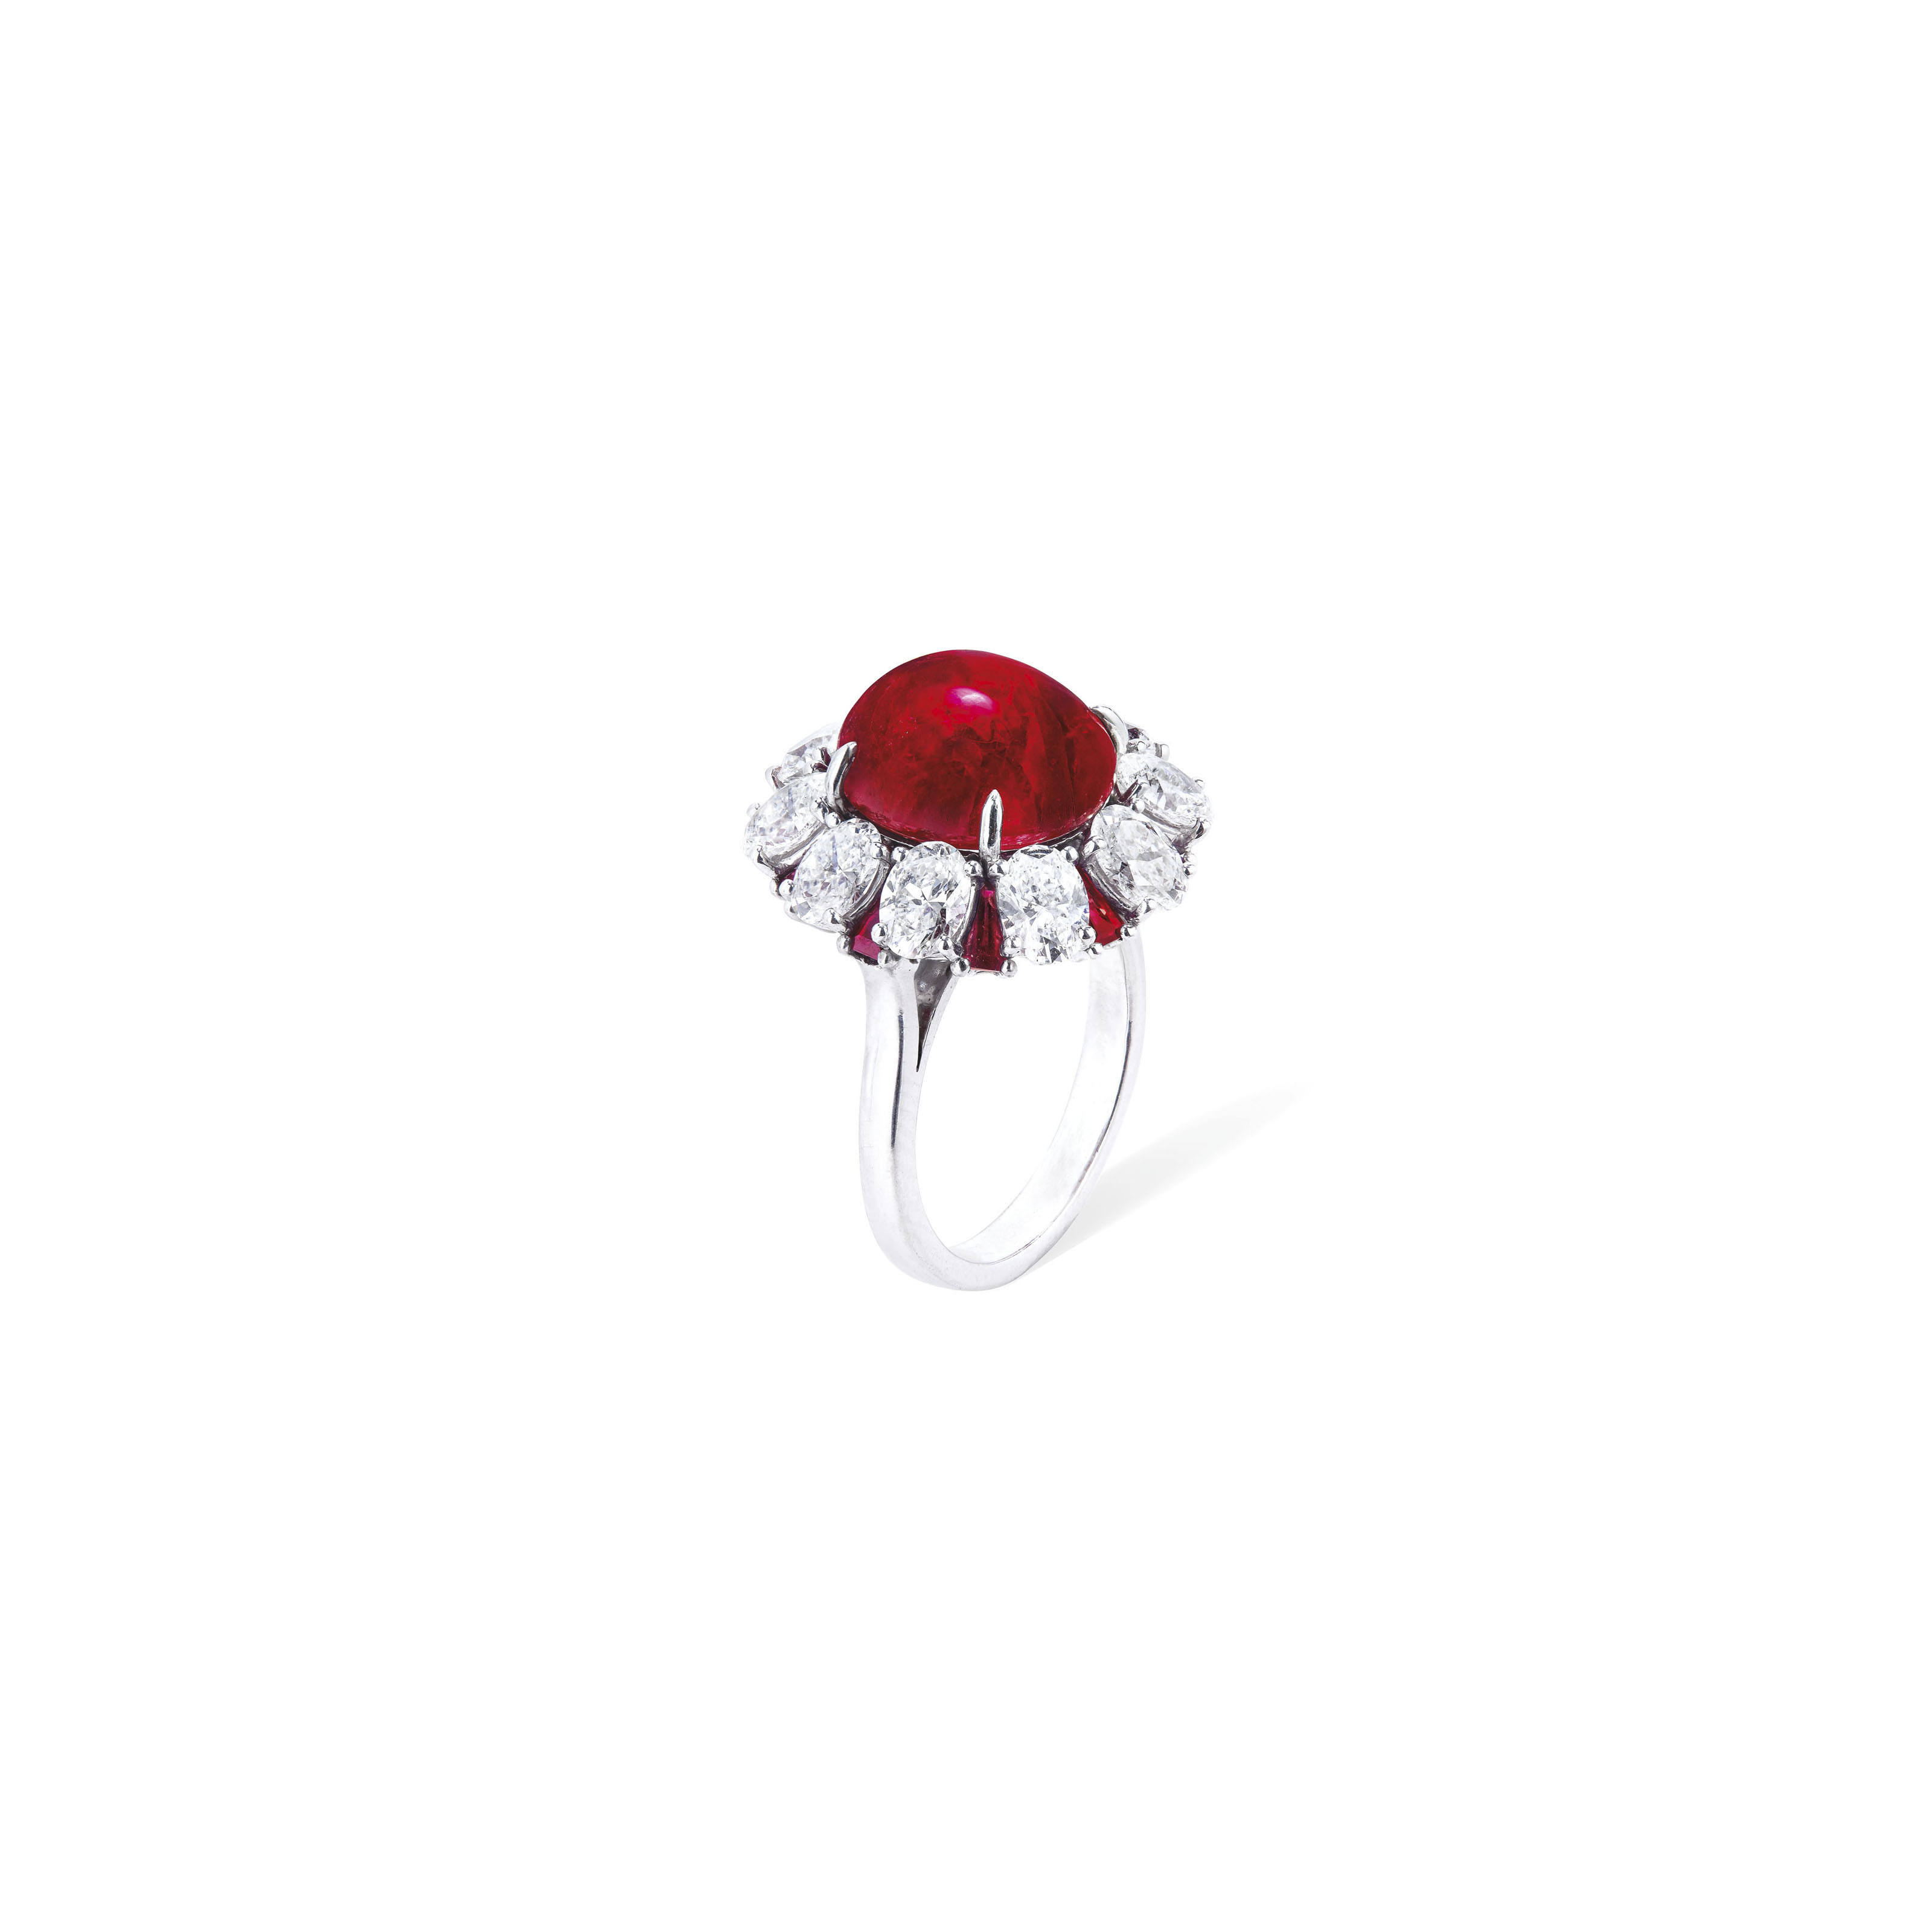 RUBY AND DIAMOND RING, HARRY W